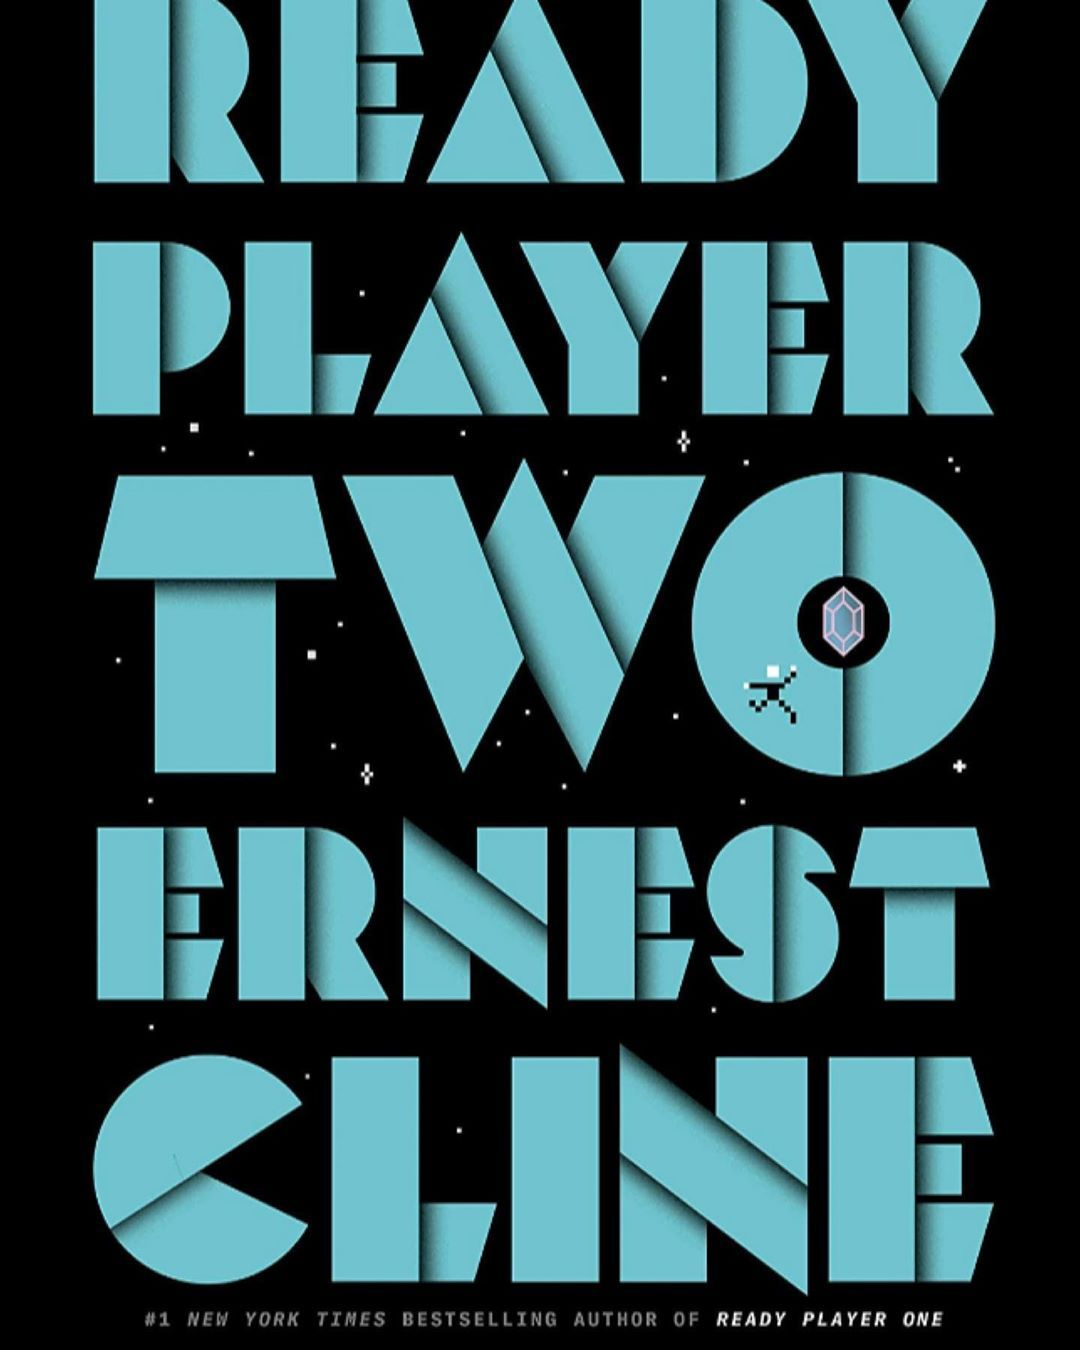 Ready Player Parzival On Instagram Ready Player Two A Novel By Ernest Cline November 24 2020 In 2020 Ready Player One Book Ready Player Two Best Book Covers